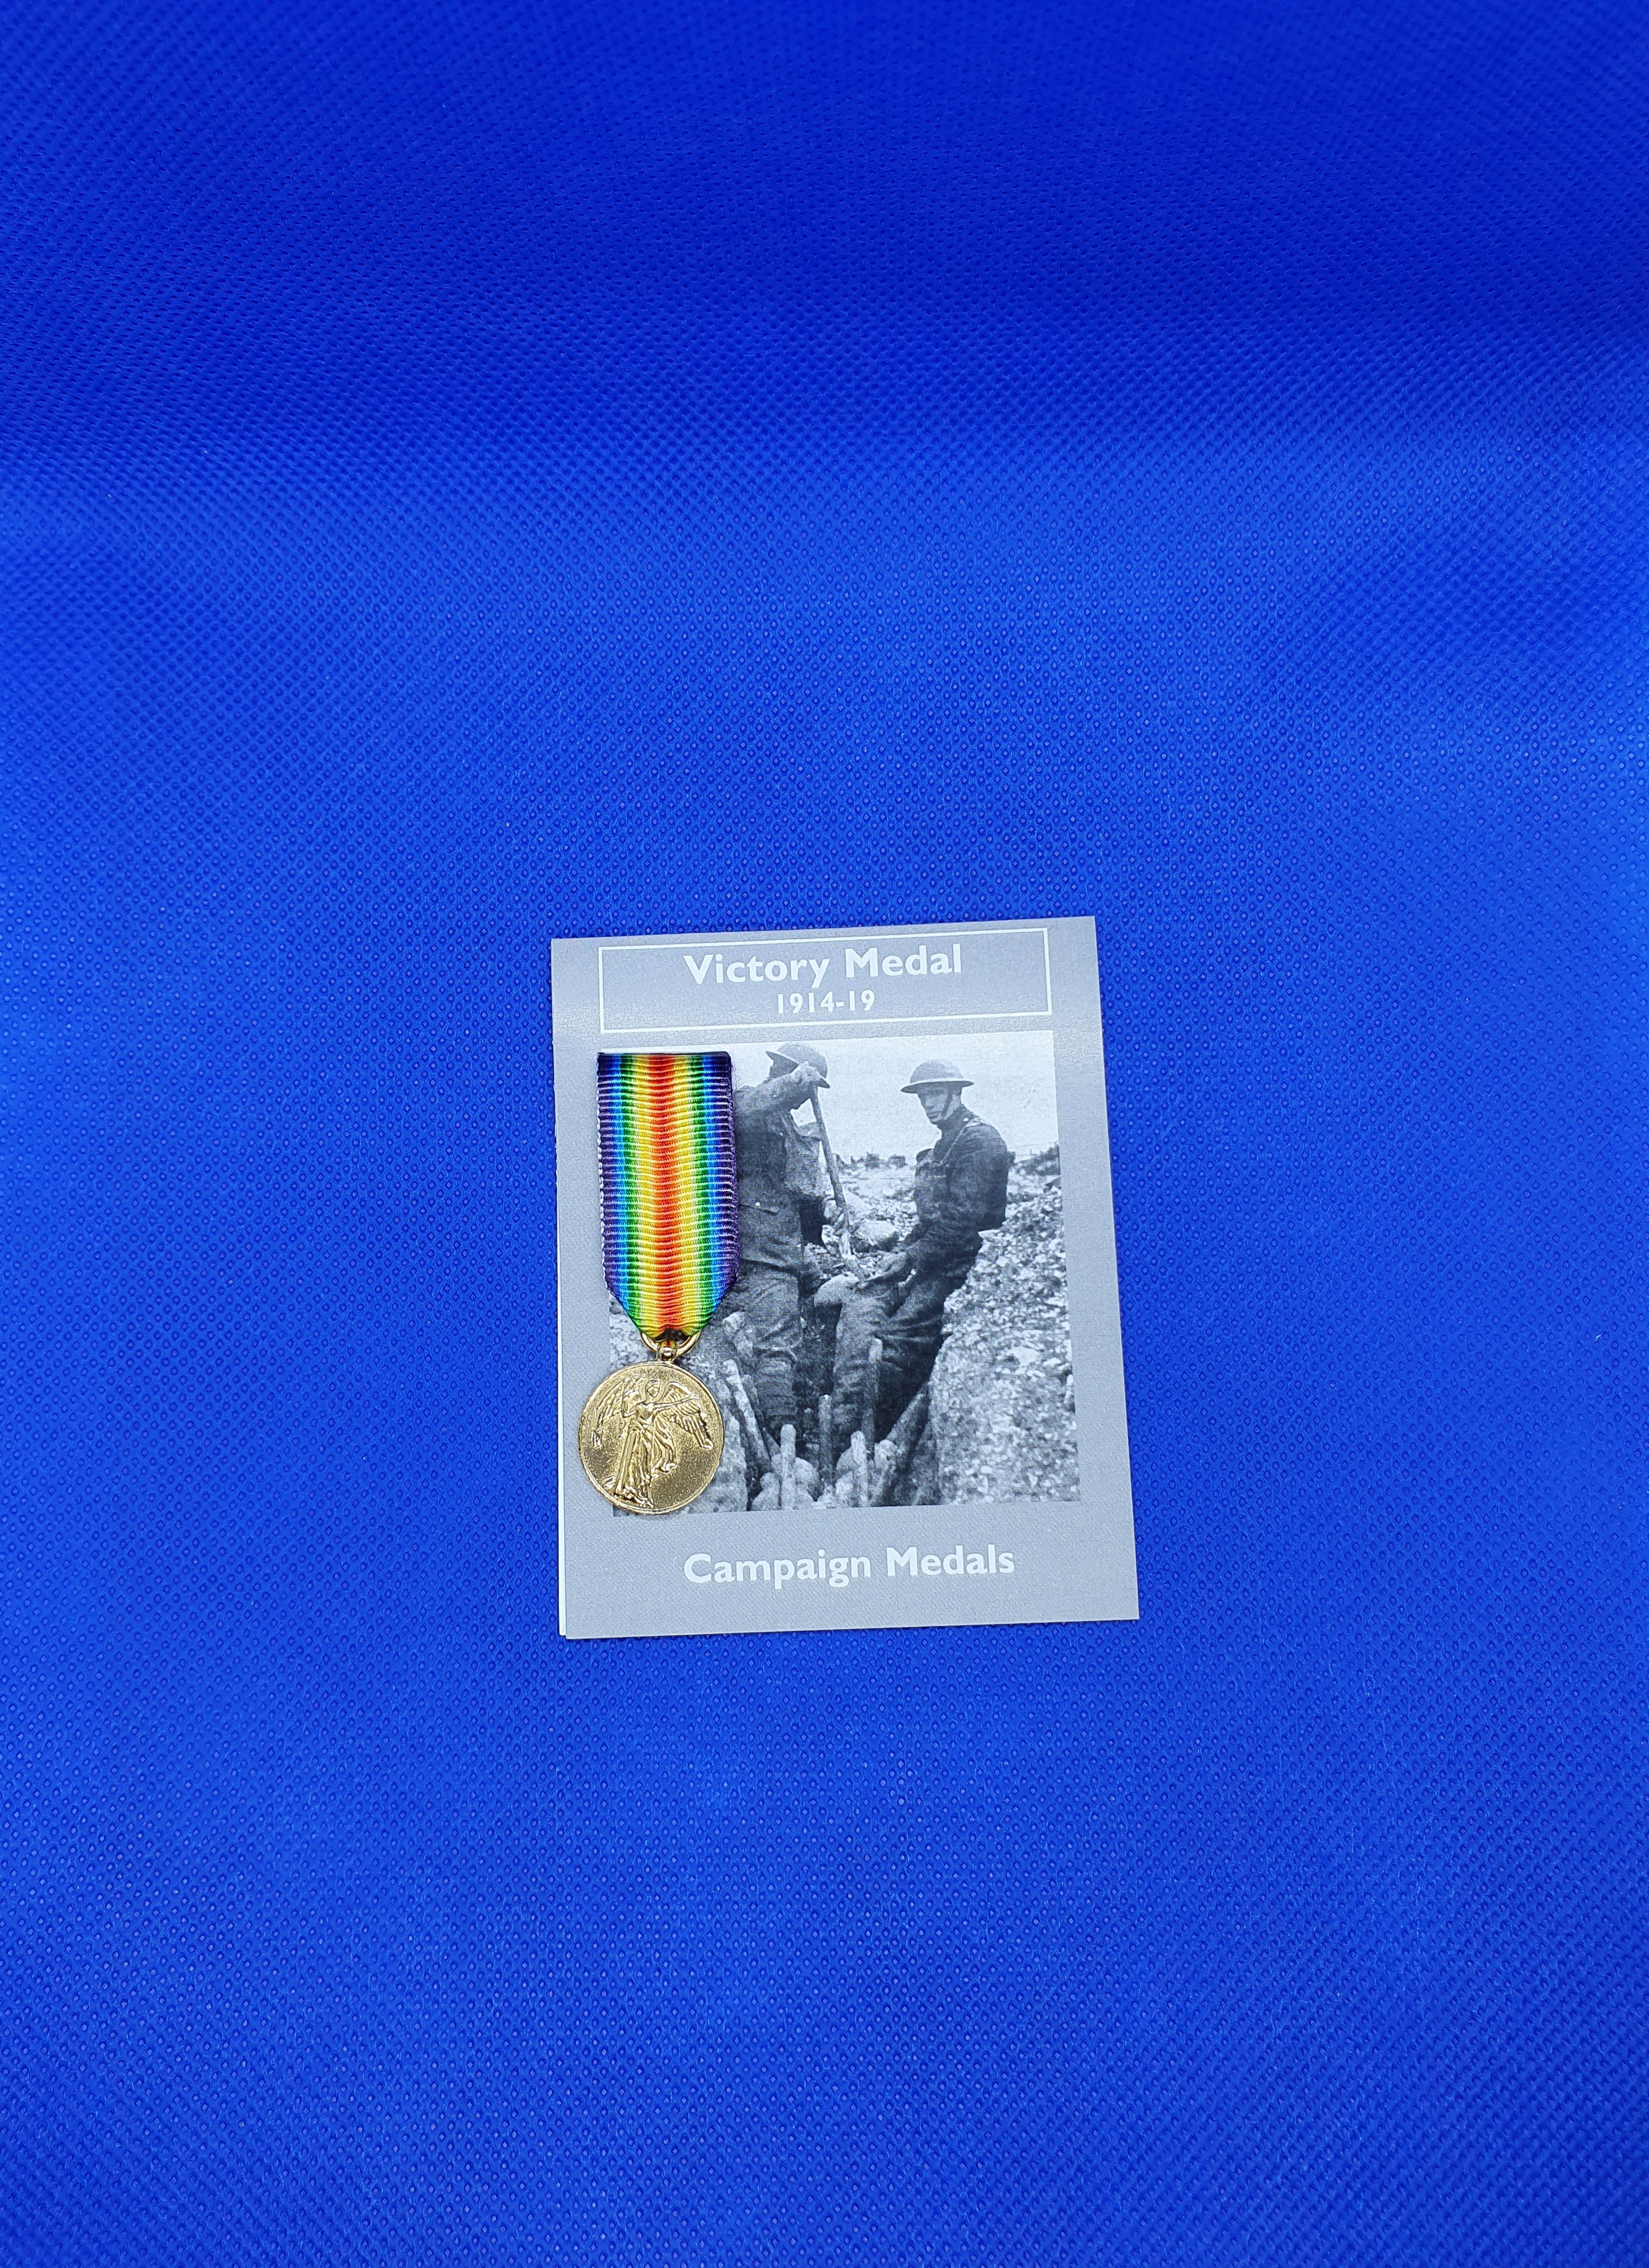 Victory Medal 1914-19 - miniature